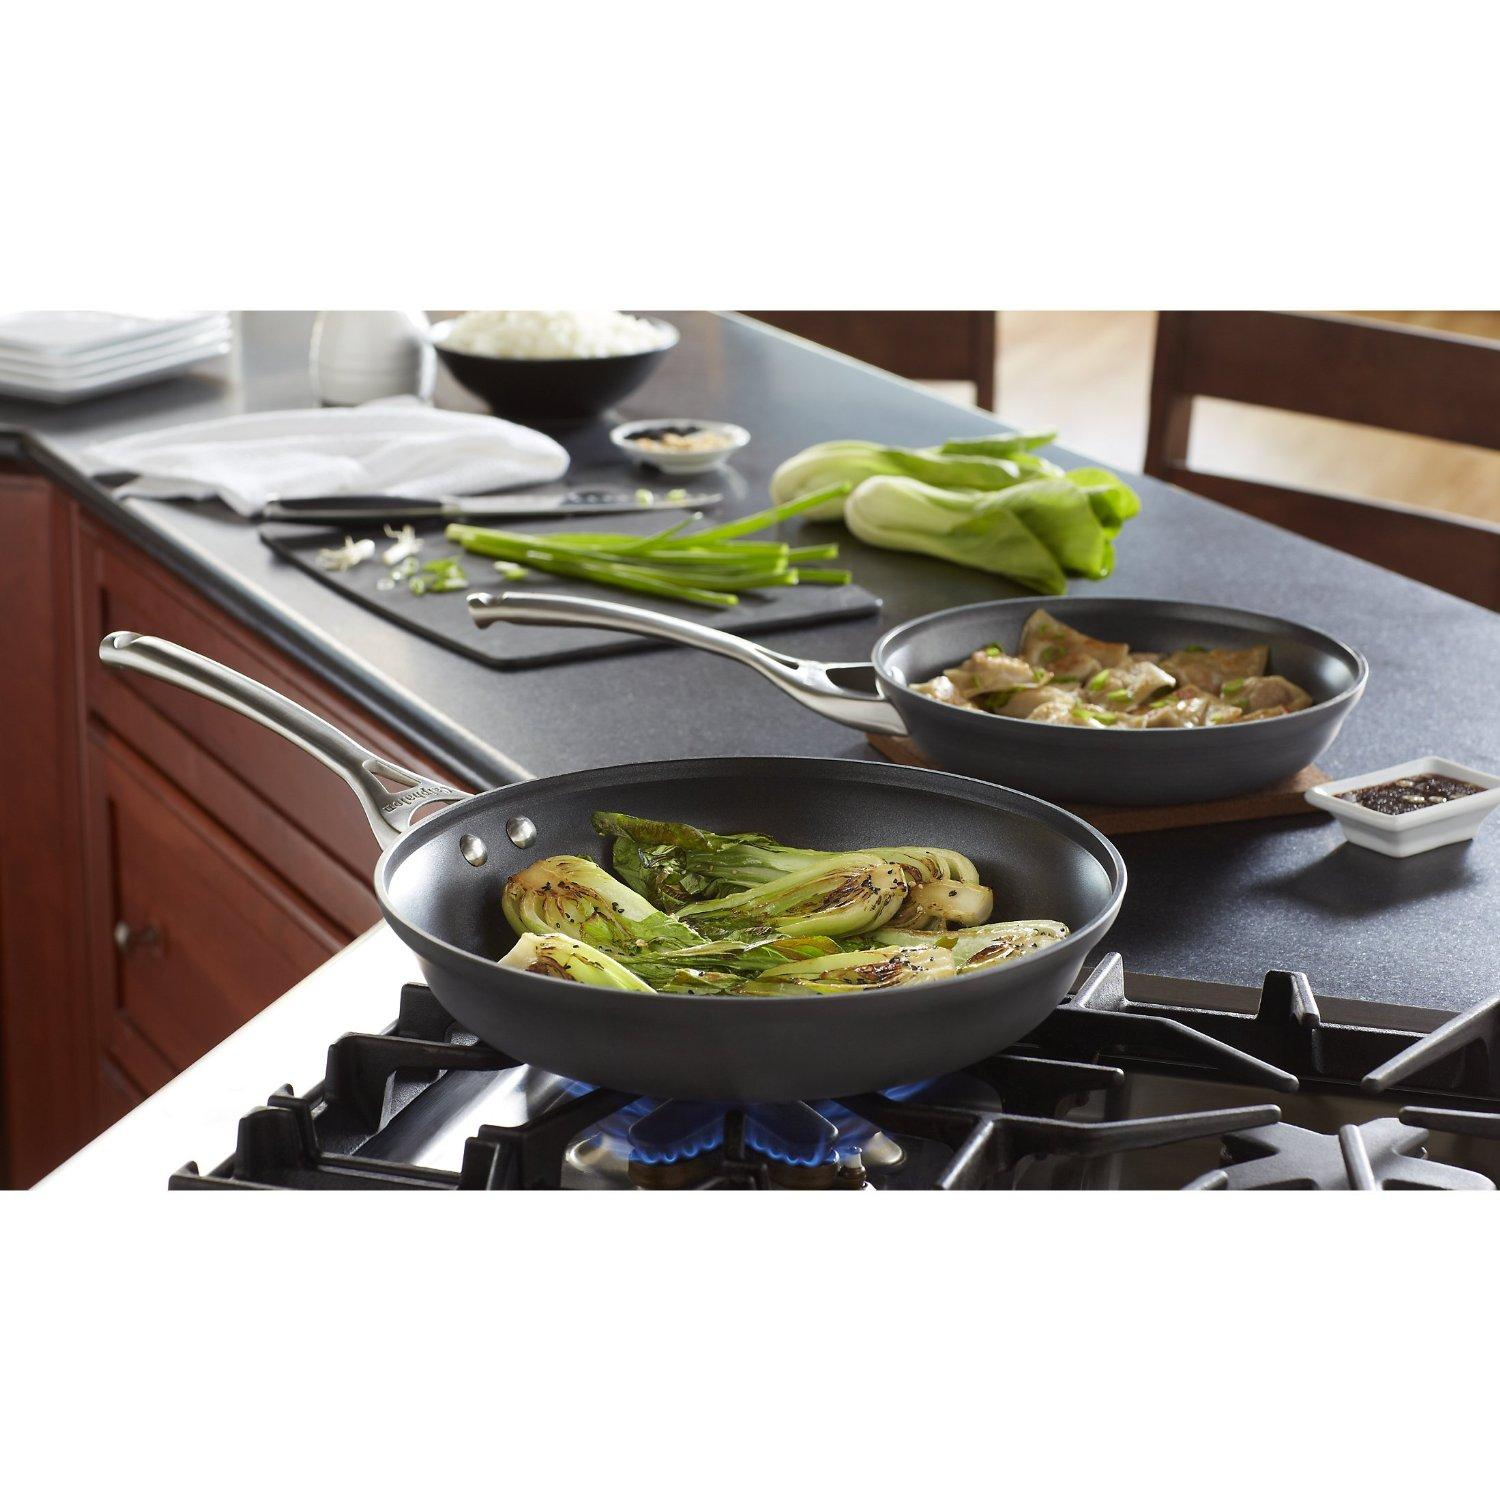 Calphalon Contemporary Hard-Anodized Aluminum Nonstick Cookware, Omelette Pan, 10-inch and 12-inch Set, Black